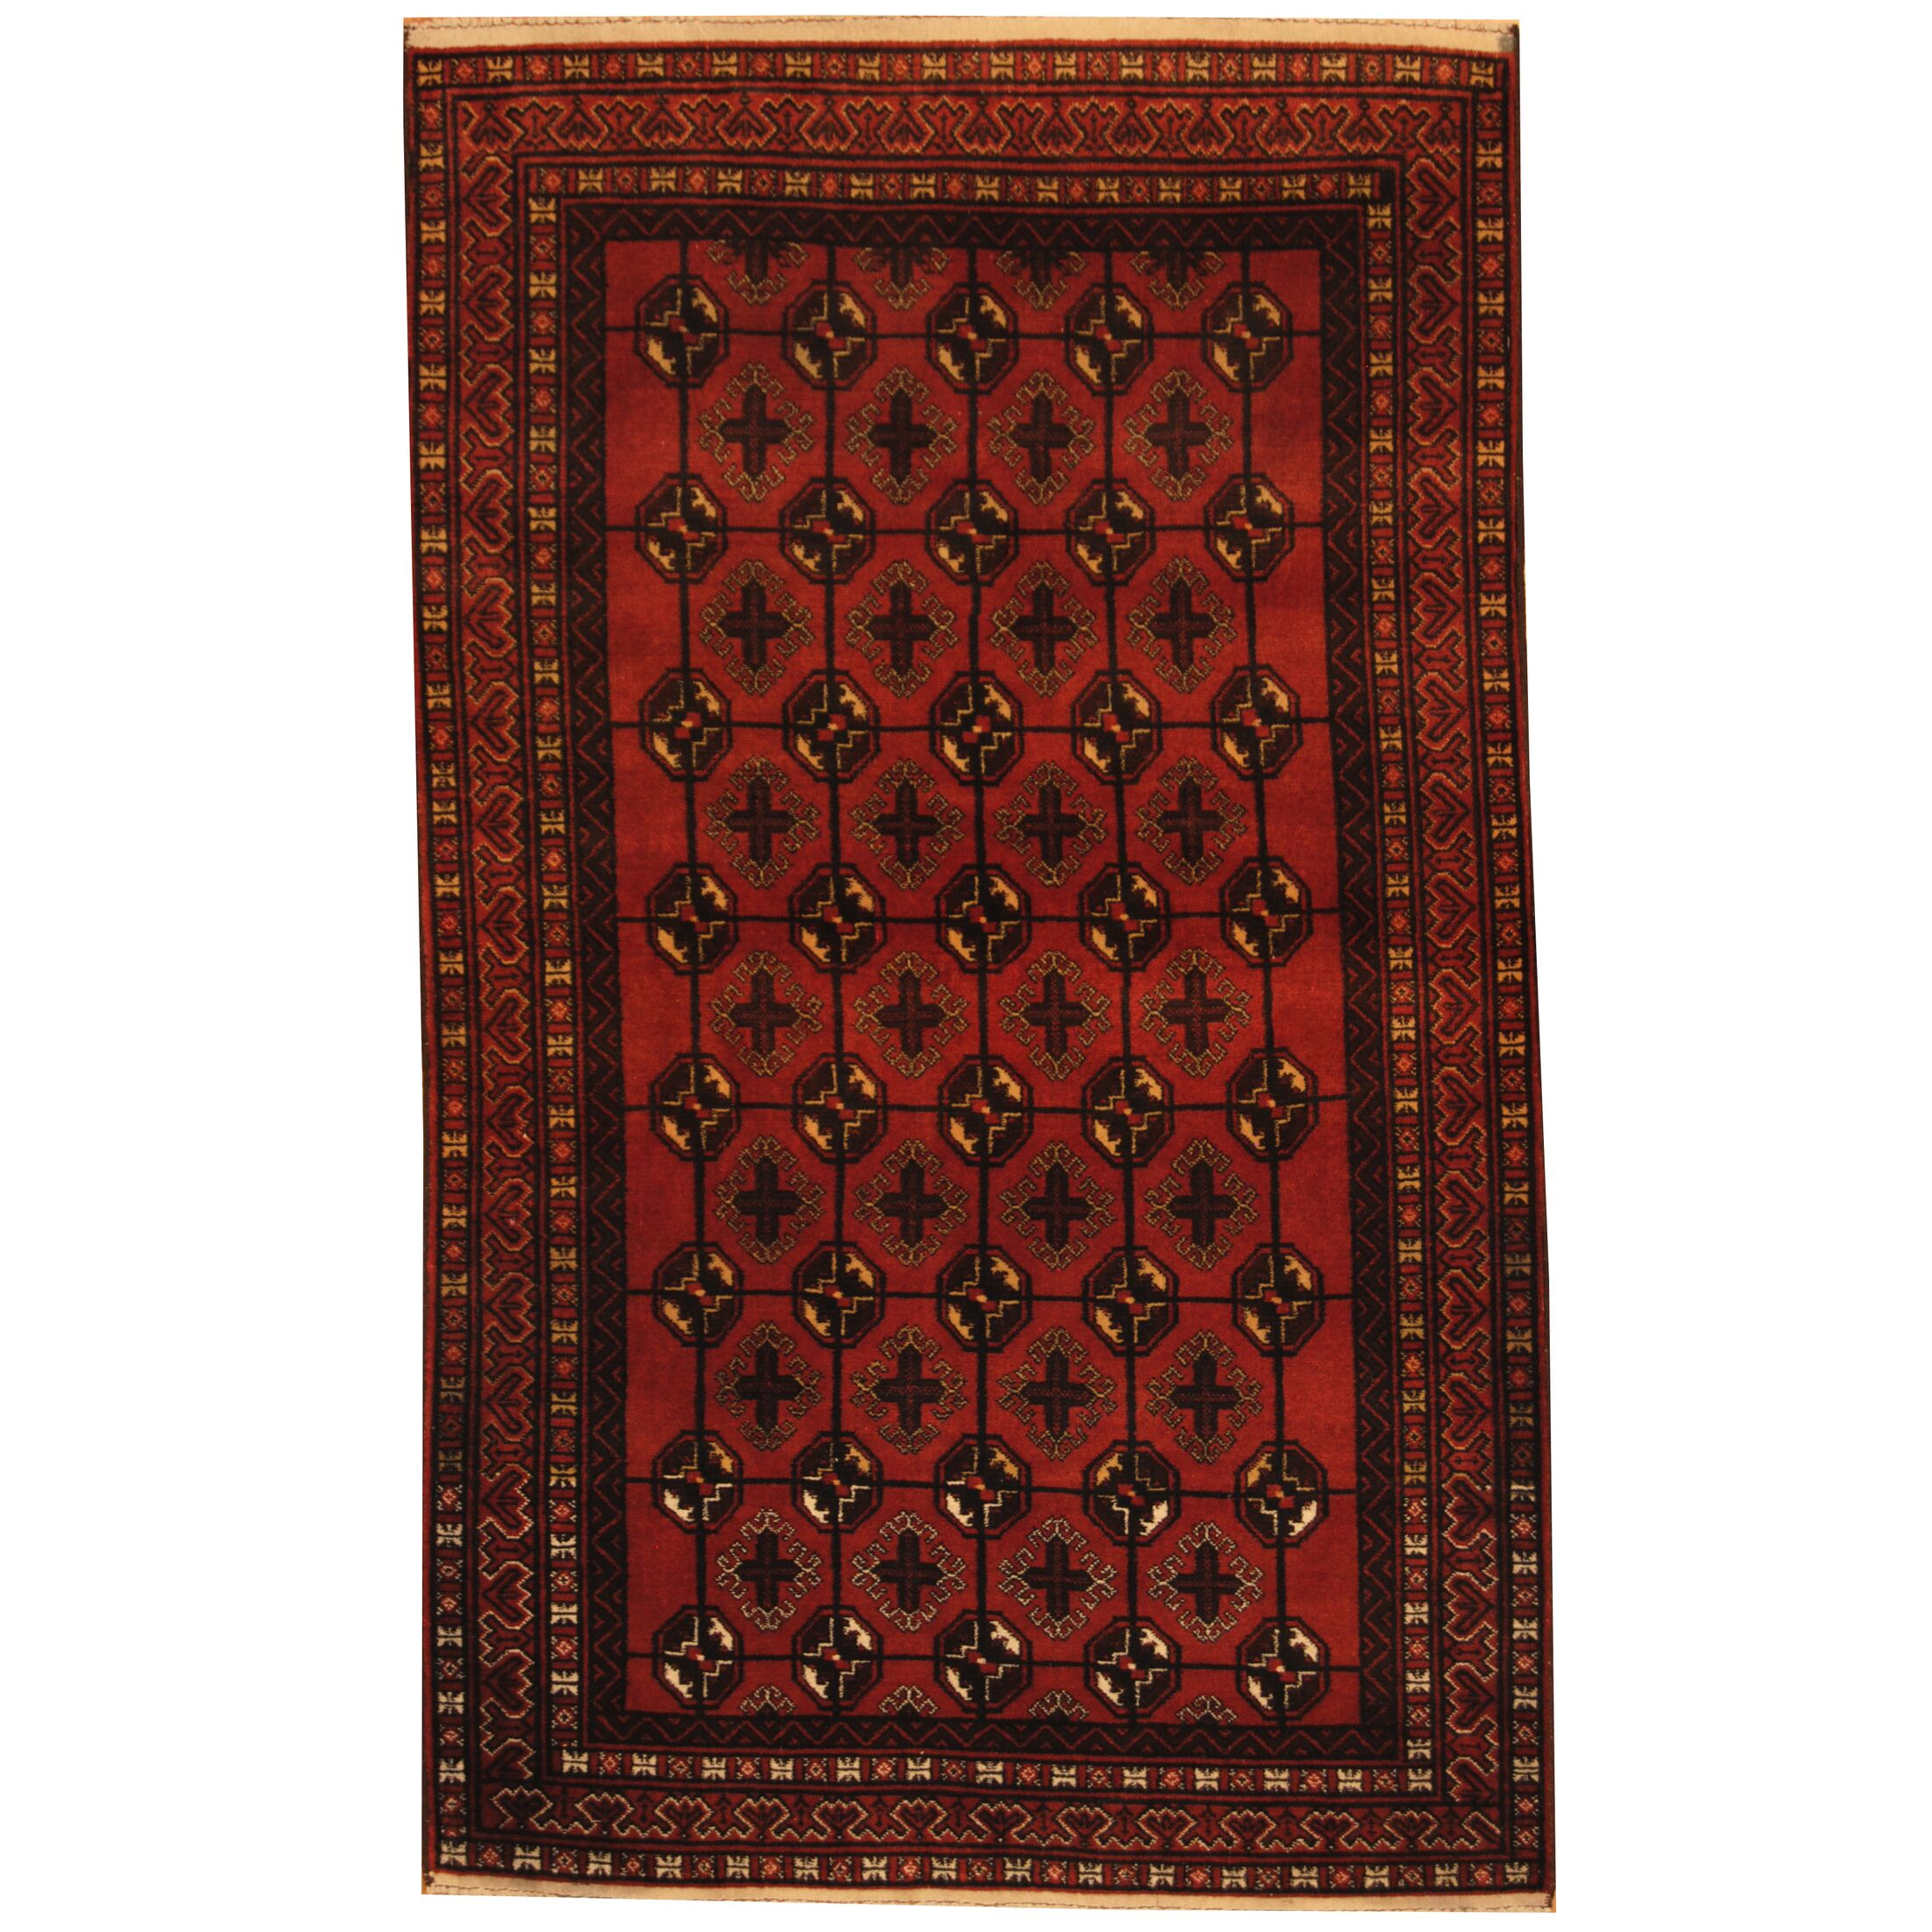 Prentice Tribal Balouchi Hand-Knotted Rust/Brown Area Rug